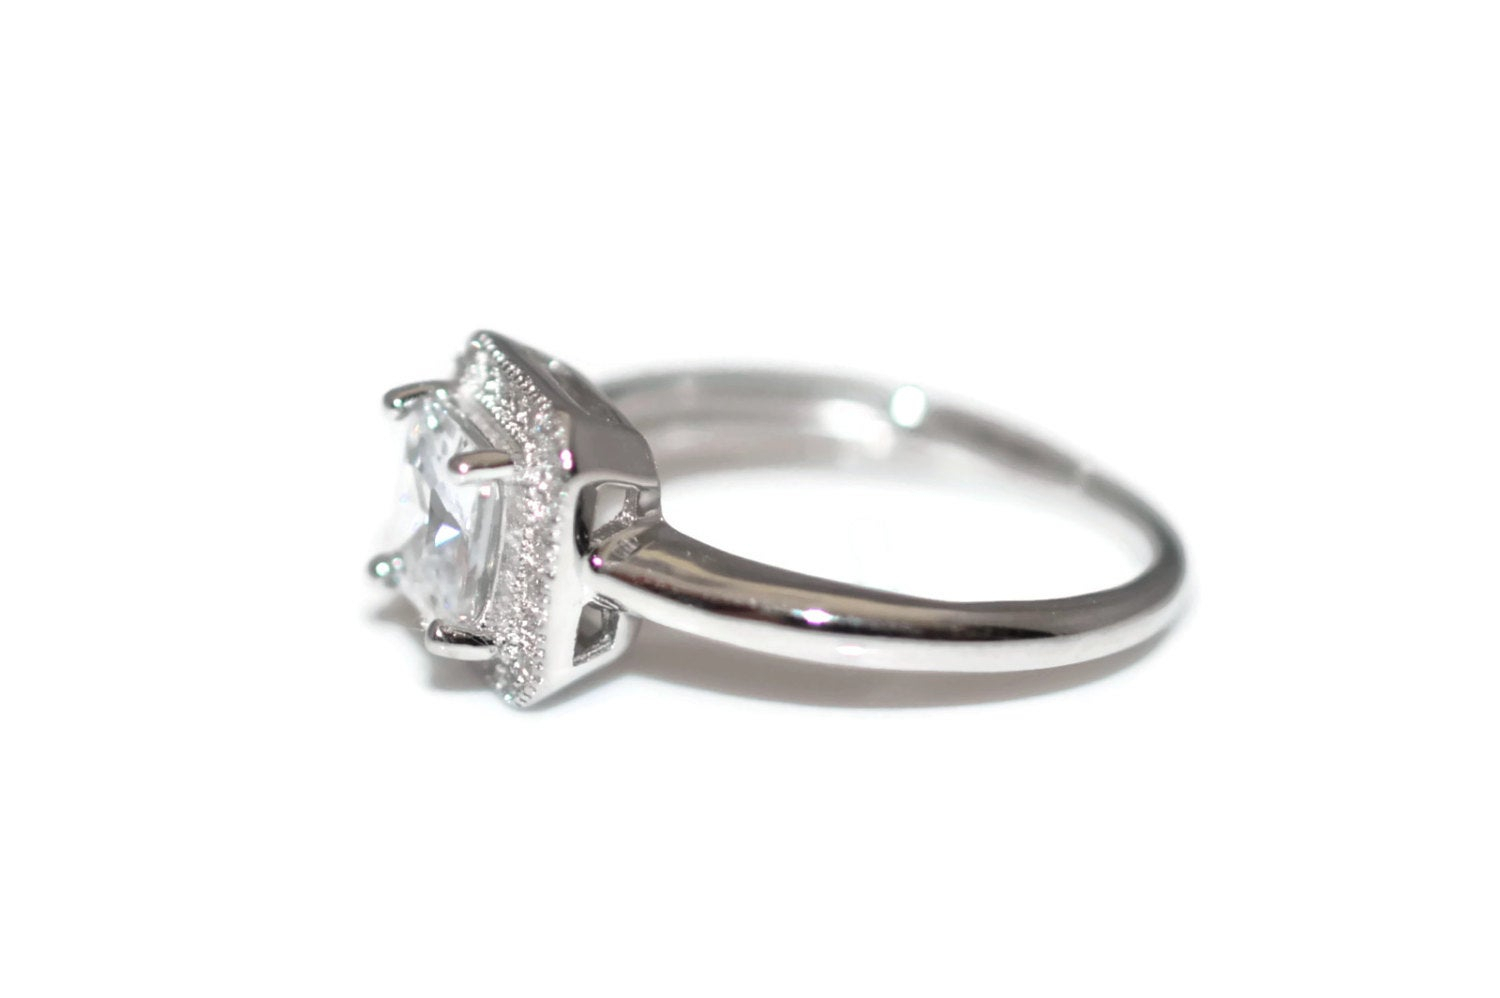 Size 7 Halo Sterling Silver Clear Cz Ring Size 7 Rhodium Plated – Sterling  Silver Clear Square Halo Cubic Zirconia Ring Rhodium Plated Intended For Most Current Sparkling Square Halo Rings (View 19 of 25)